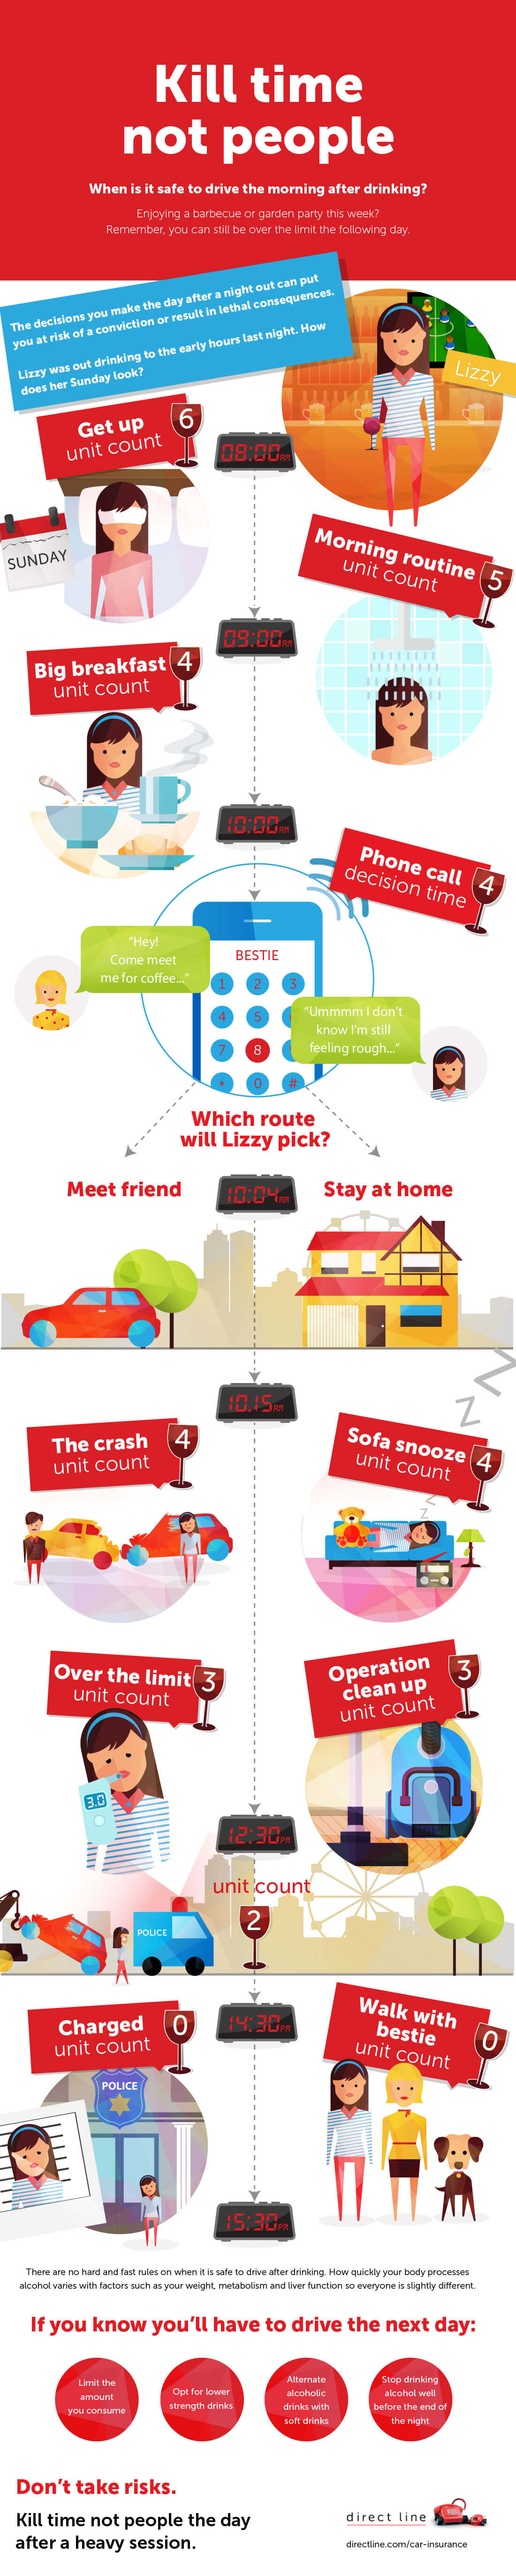 Kill time not people infographic